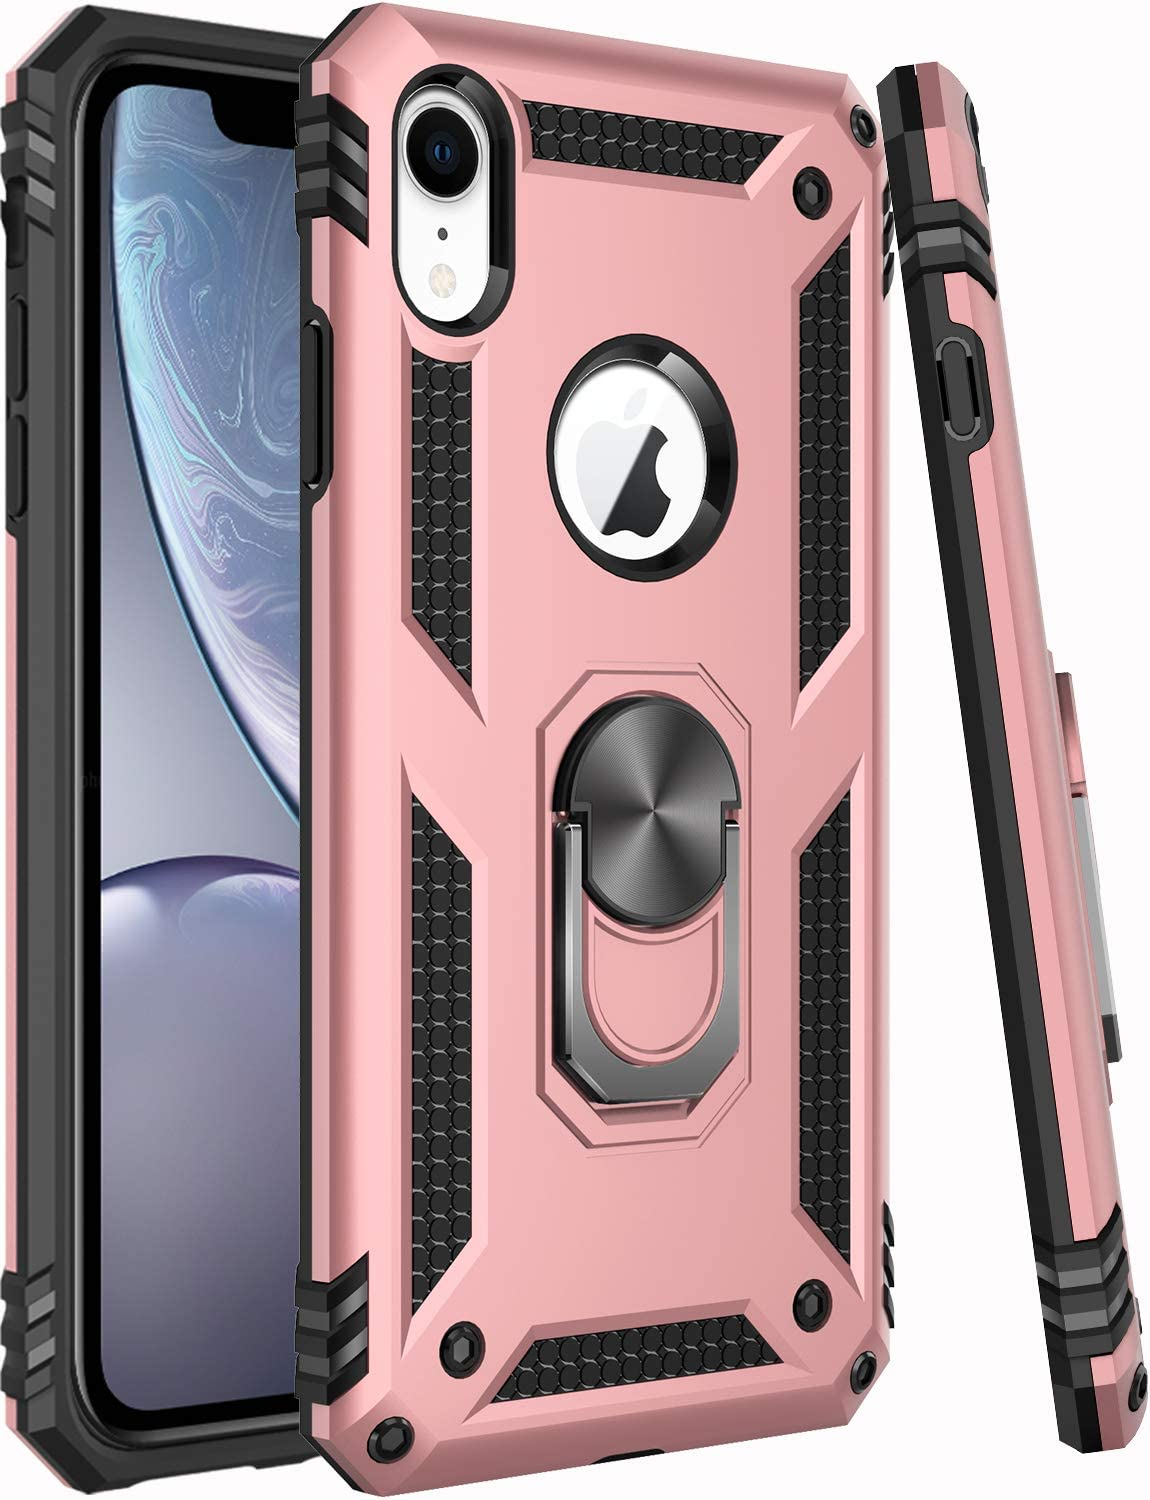 iPhone XR Case,ZADORN 15ft Drop Tested,Military Grade Heavy Duty Protective Cover with Hard PC and Soft Silicone Protective Phone Case for iPhone XR Brass